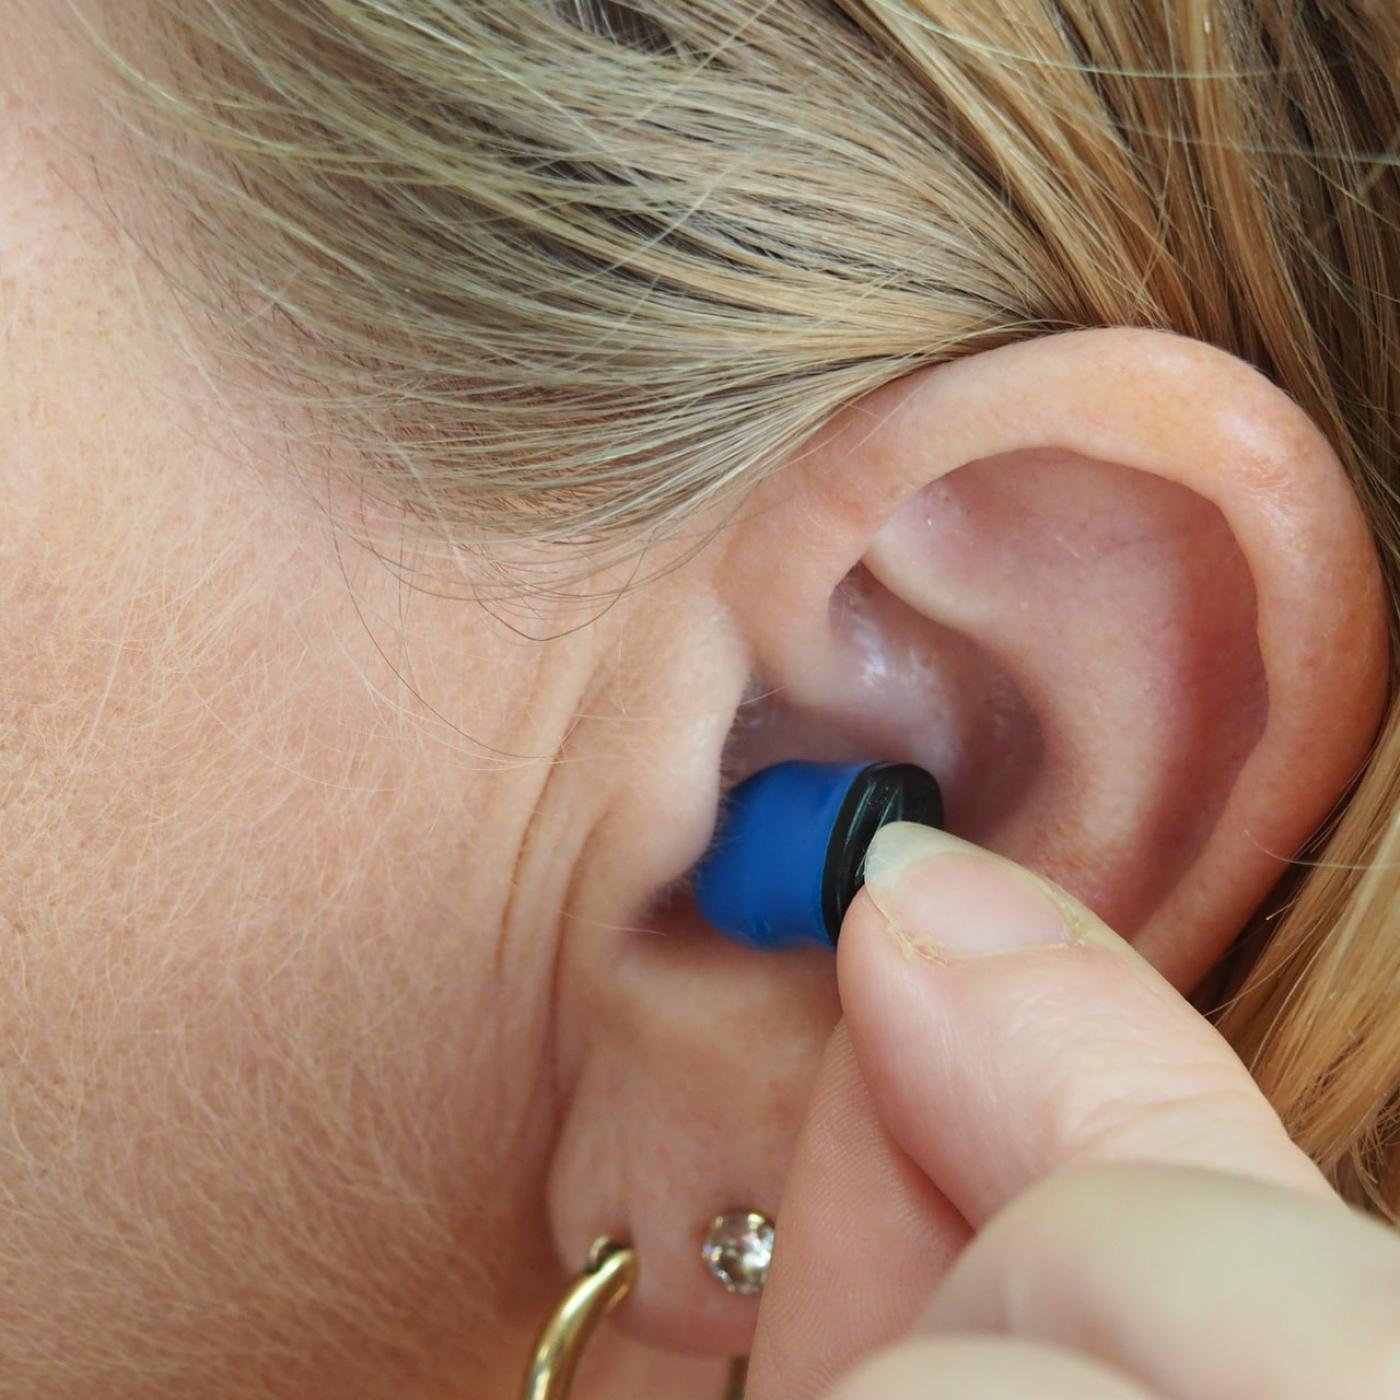 Hearing loss and how it can affect your life